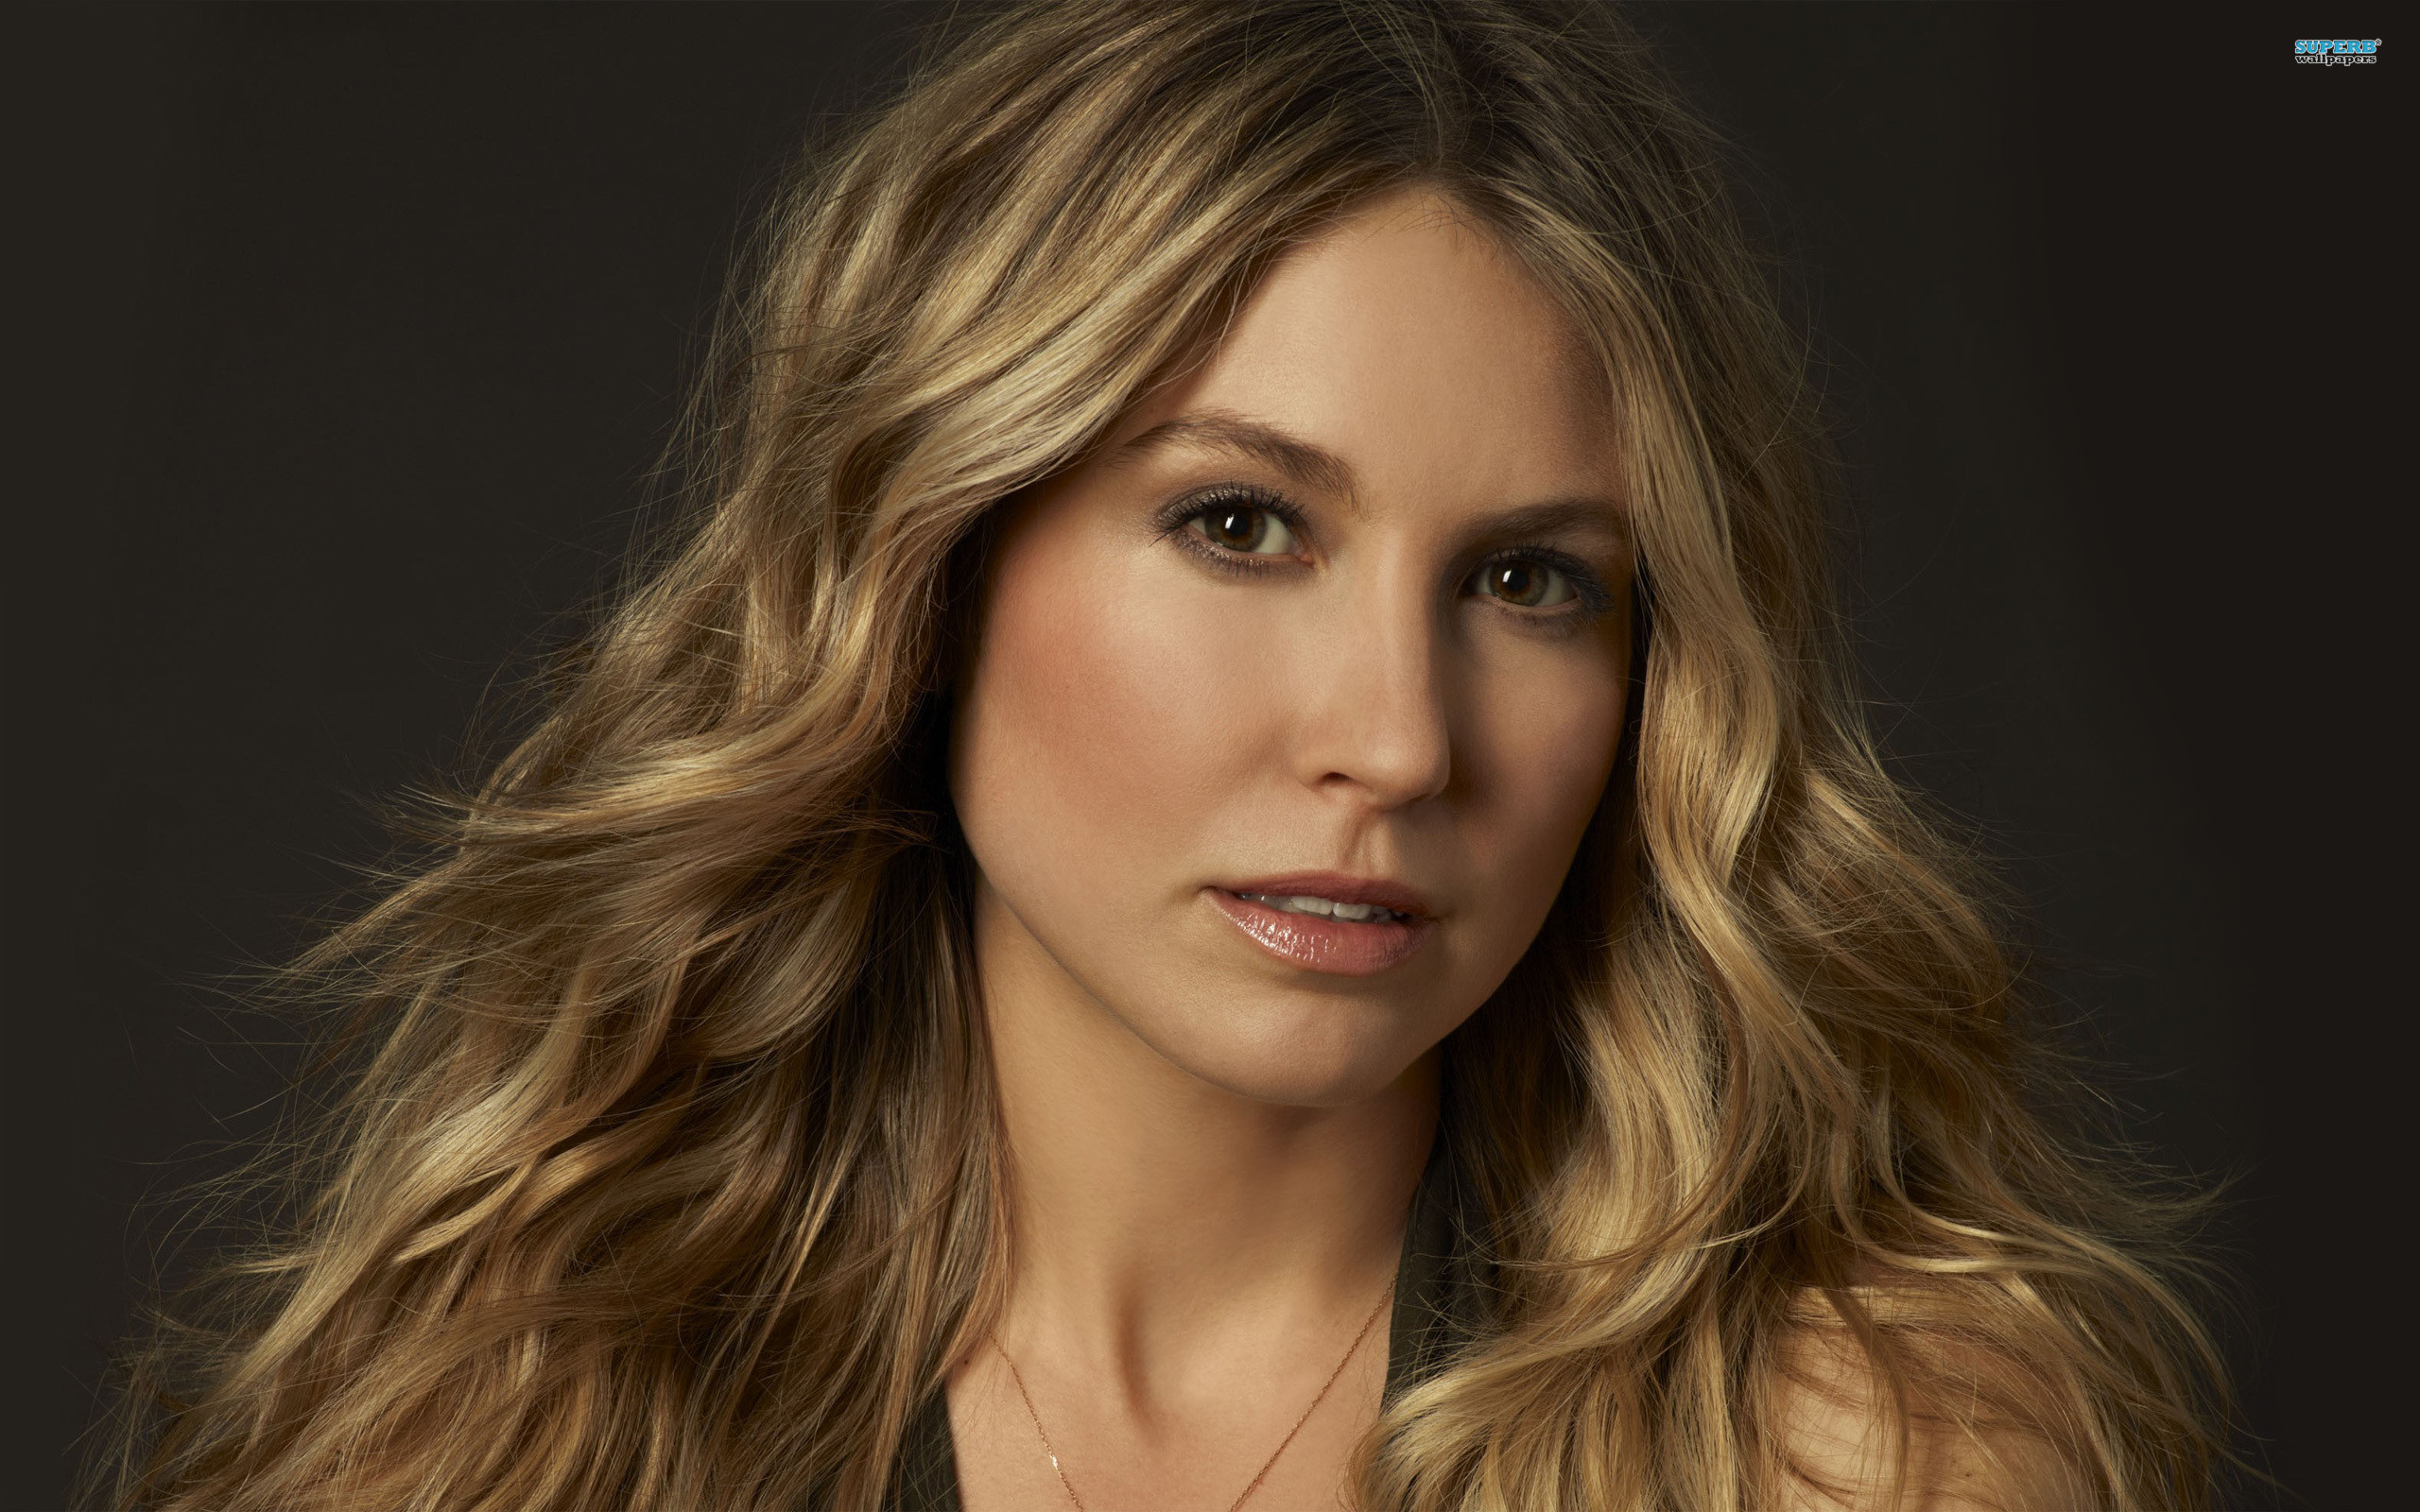 Sarah Carter Wallpapers High Resolution and Quality Download 2560x1600